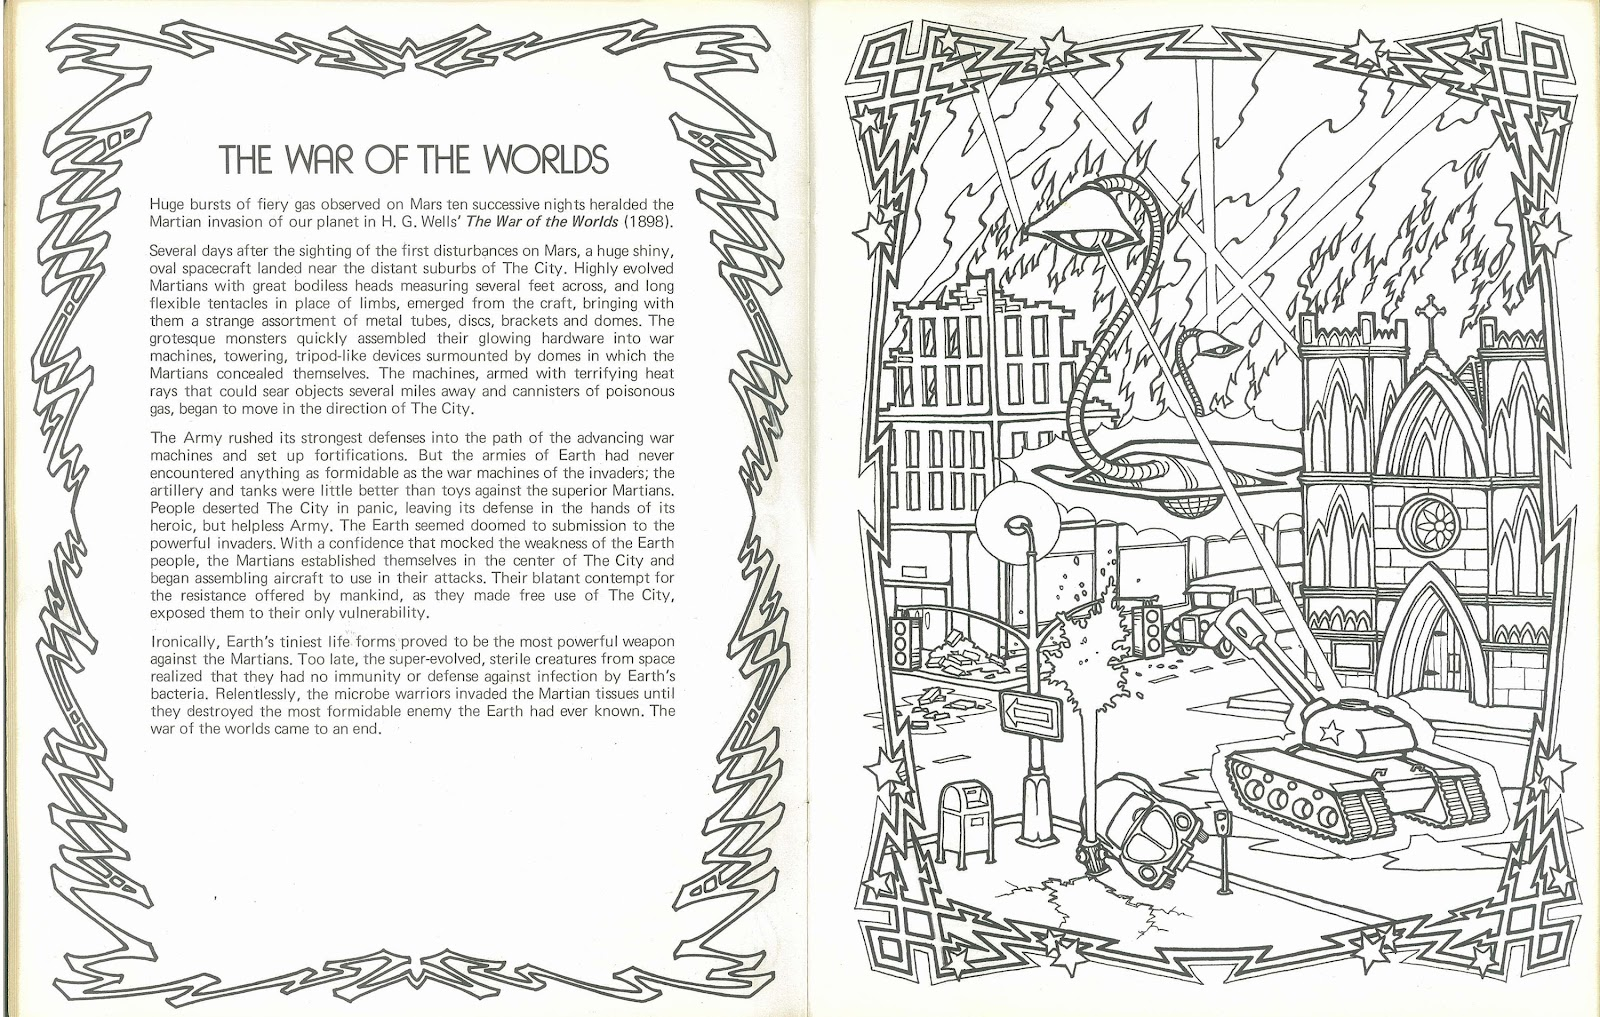 science fiction anthology coloring book 1 of 2